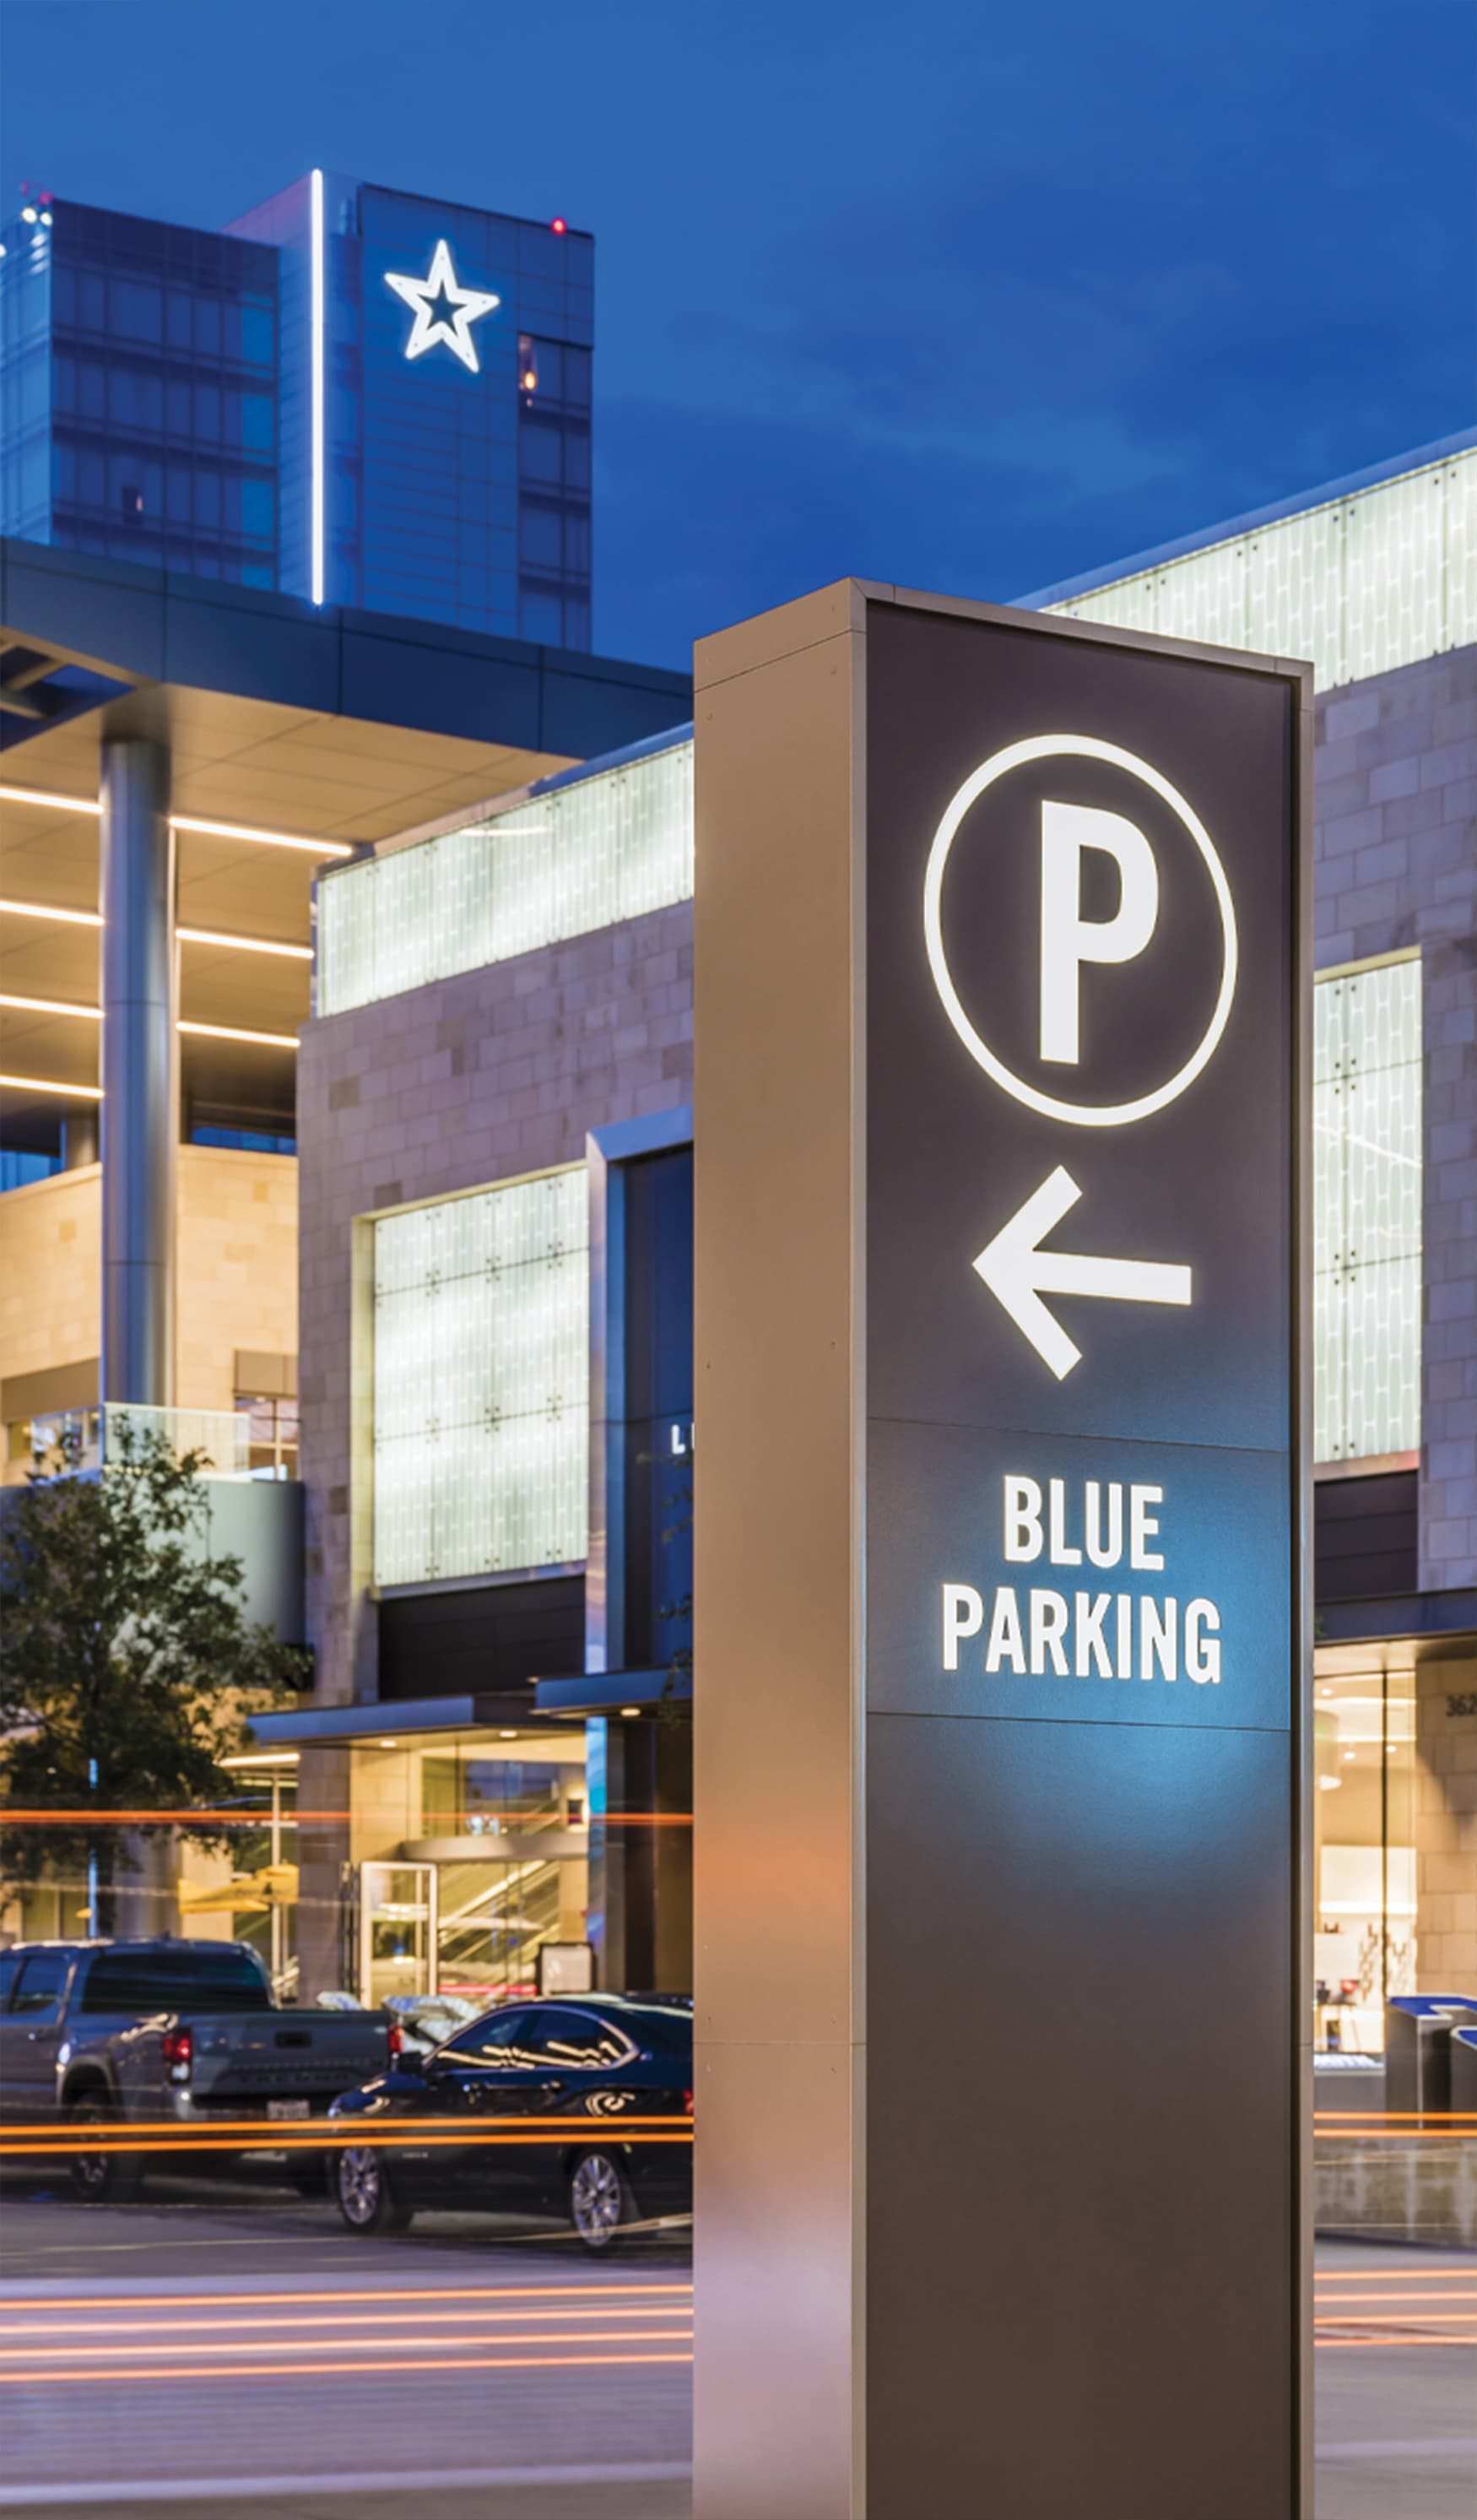 The Star Dallas Cowboys vehicular parking directional